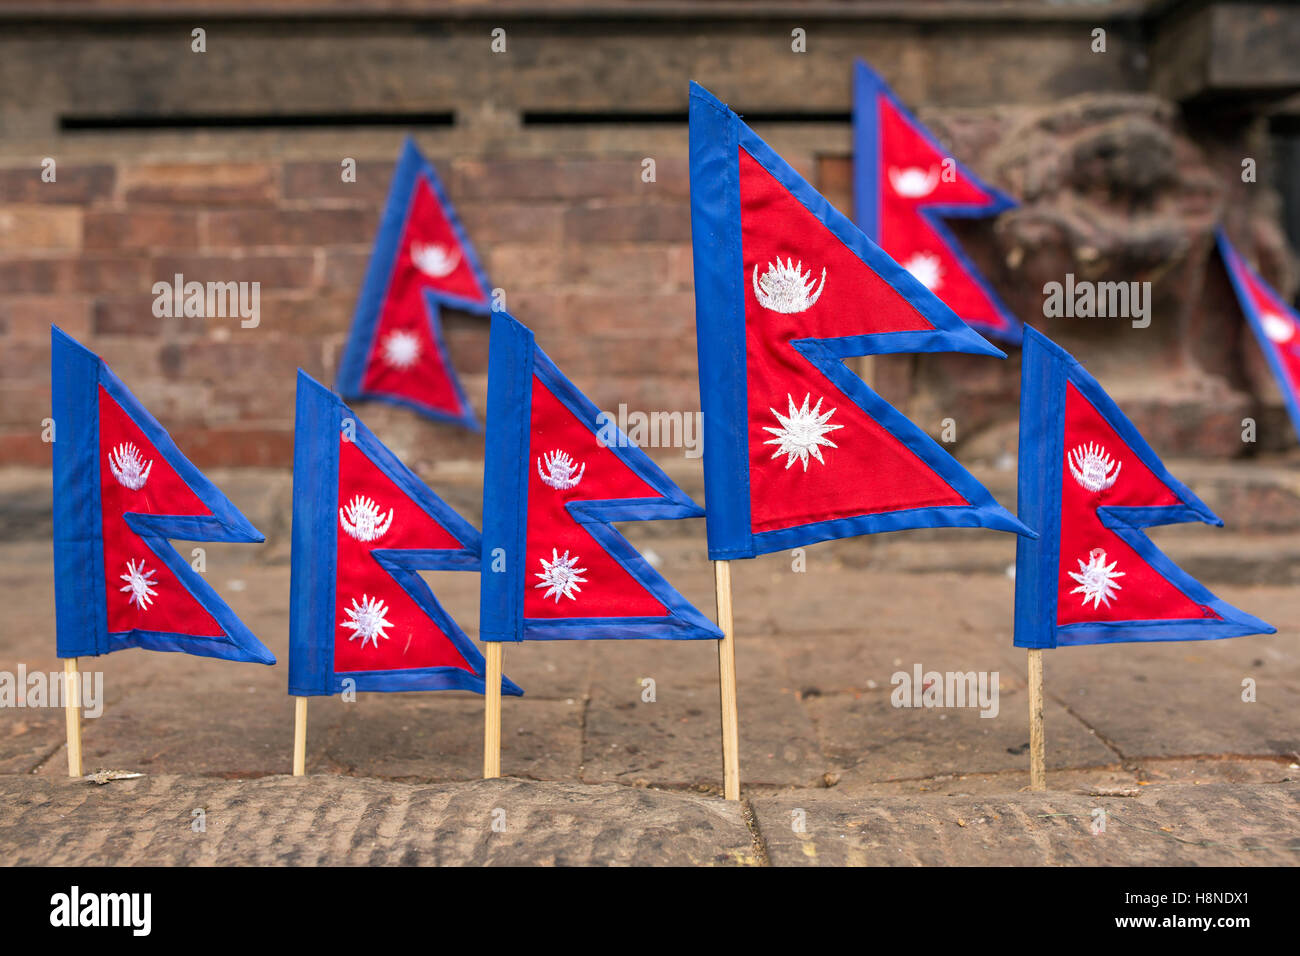 Small Nepal flag for sale in Kathmandu, Nepal Stock Photo